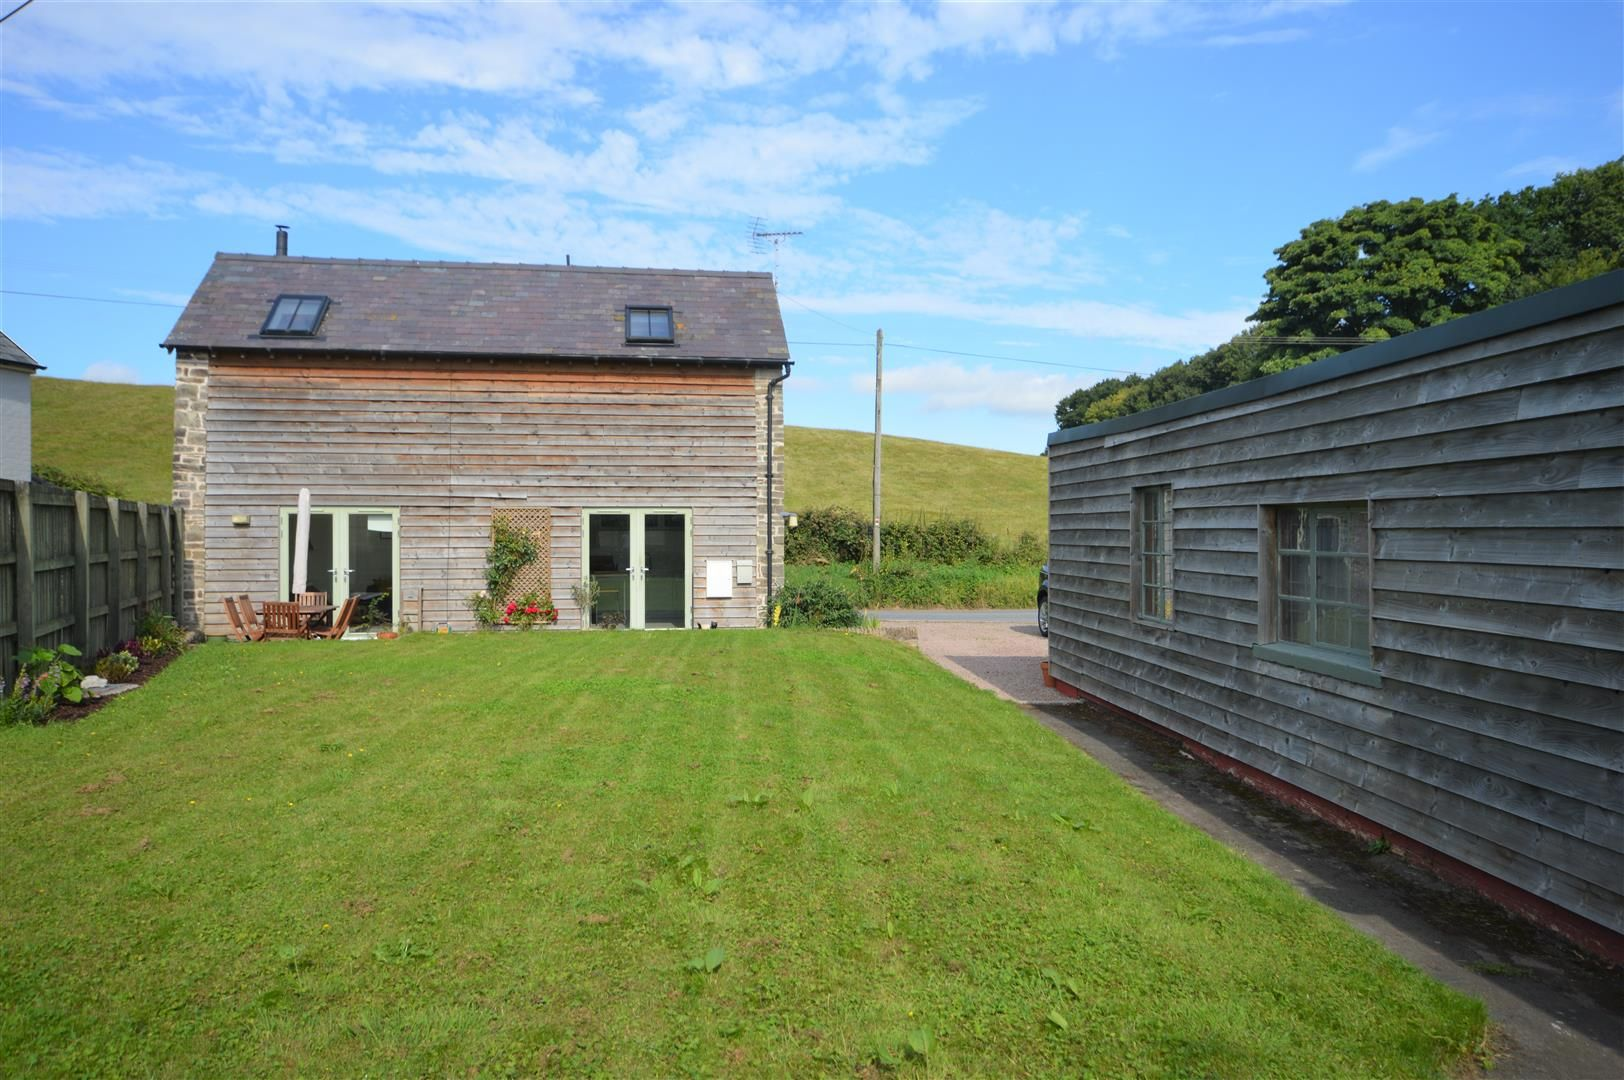 3 bed barn-conversion for sale in Lyonshall, HR5